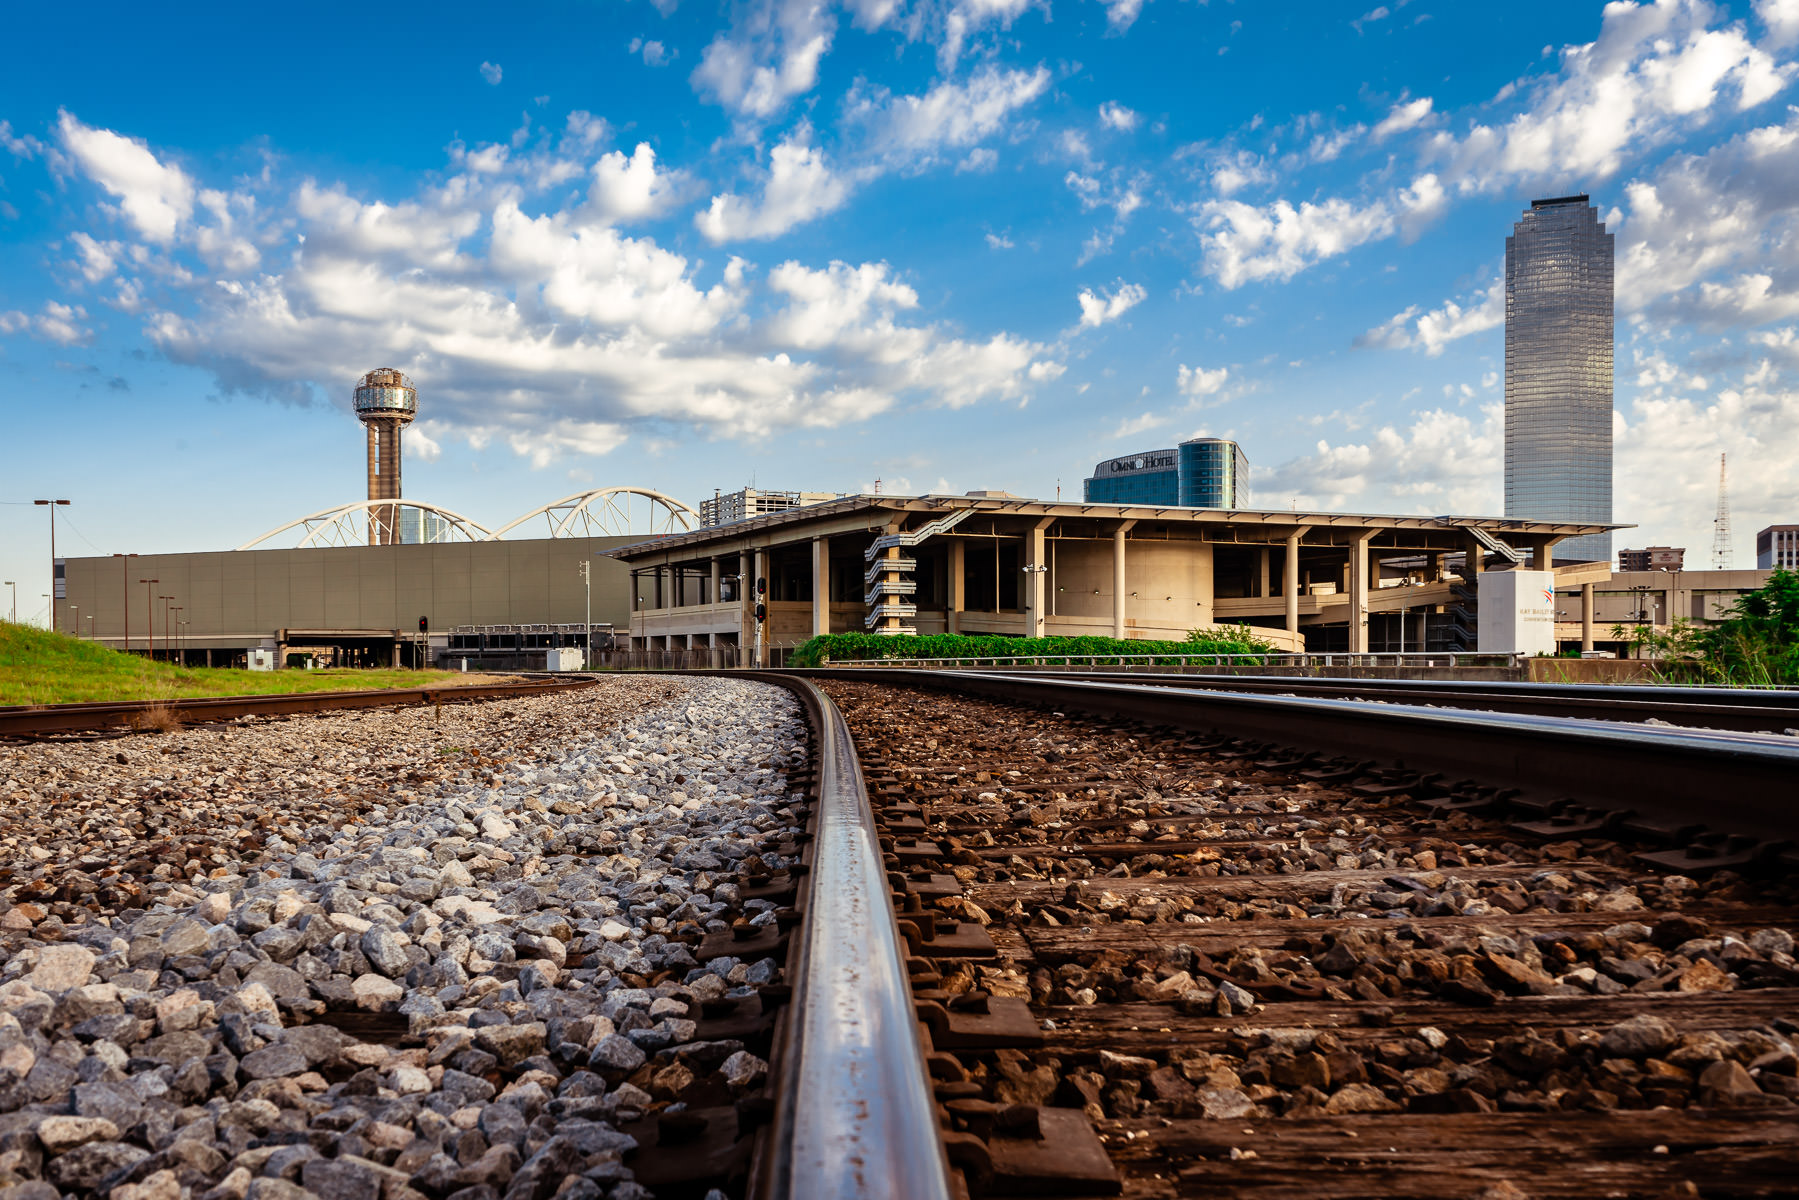 A railroad line leads towards the Dallas Convention Center and its adjacent heliport.